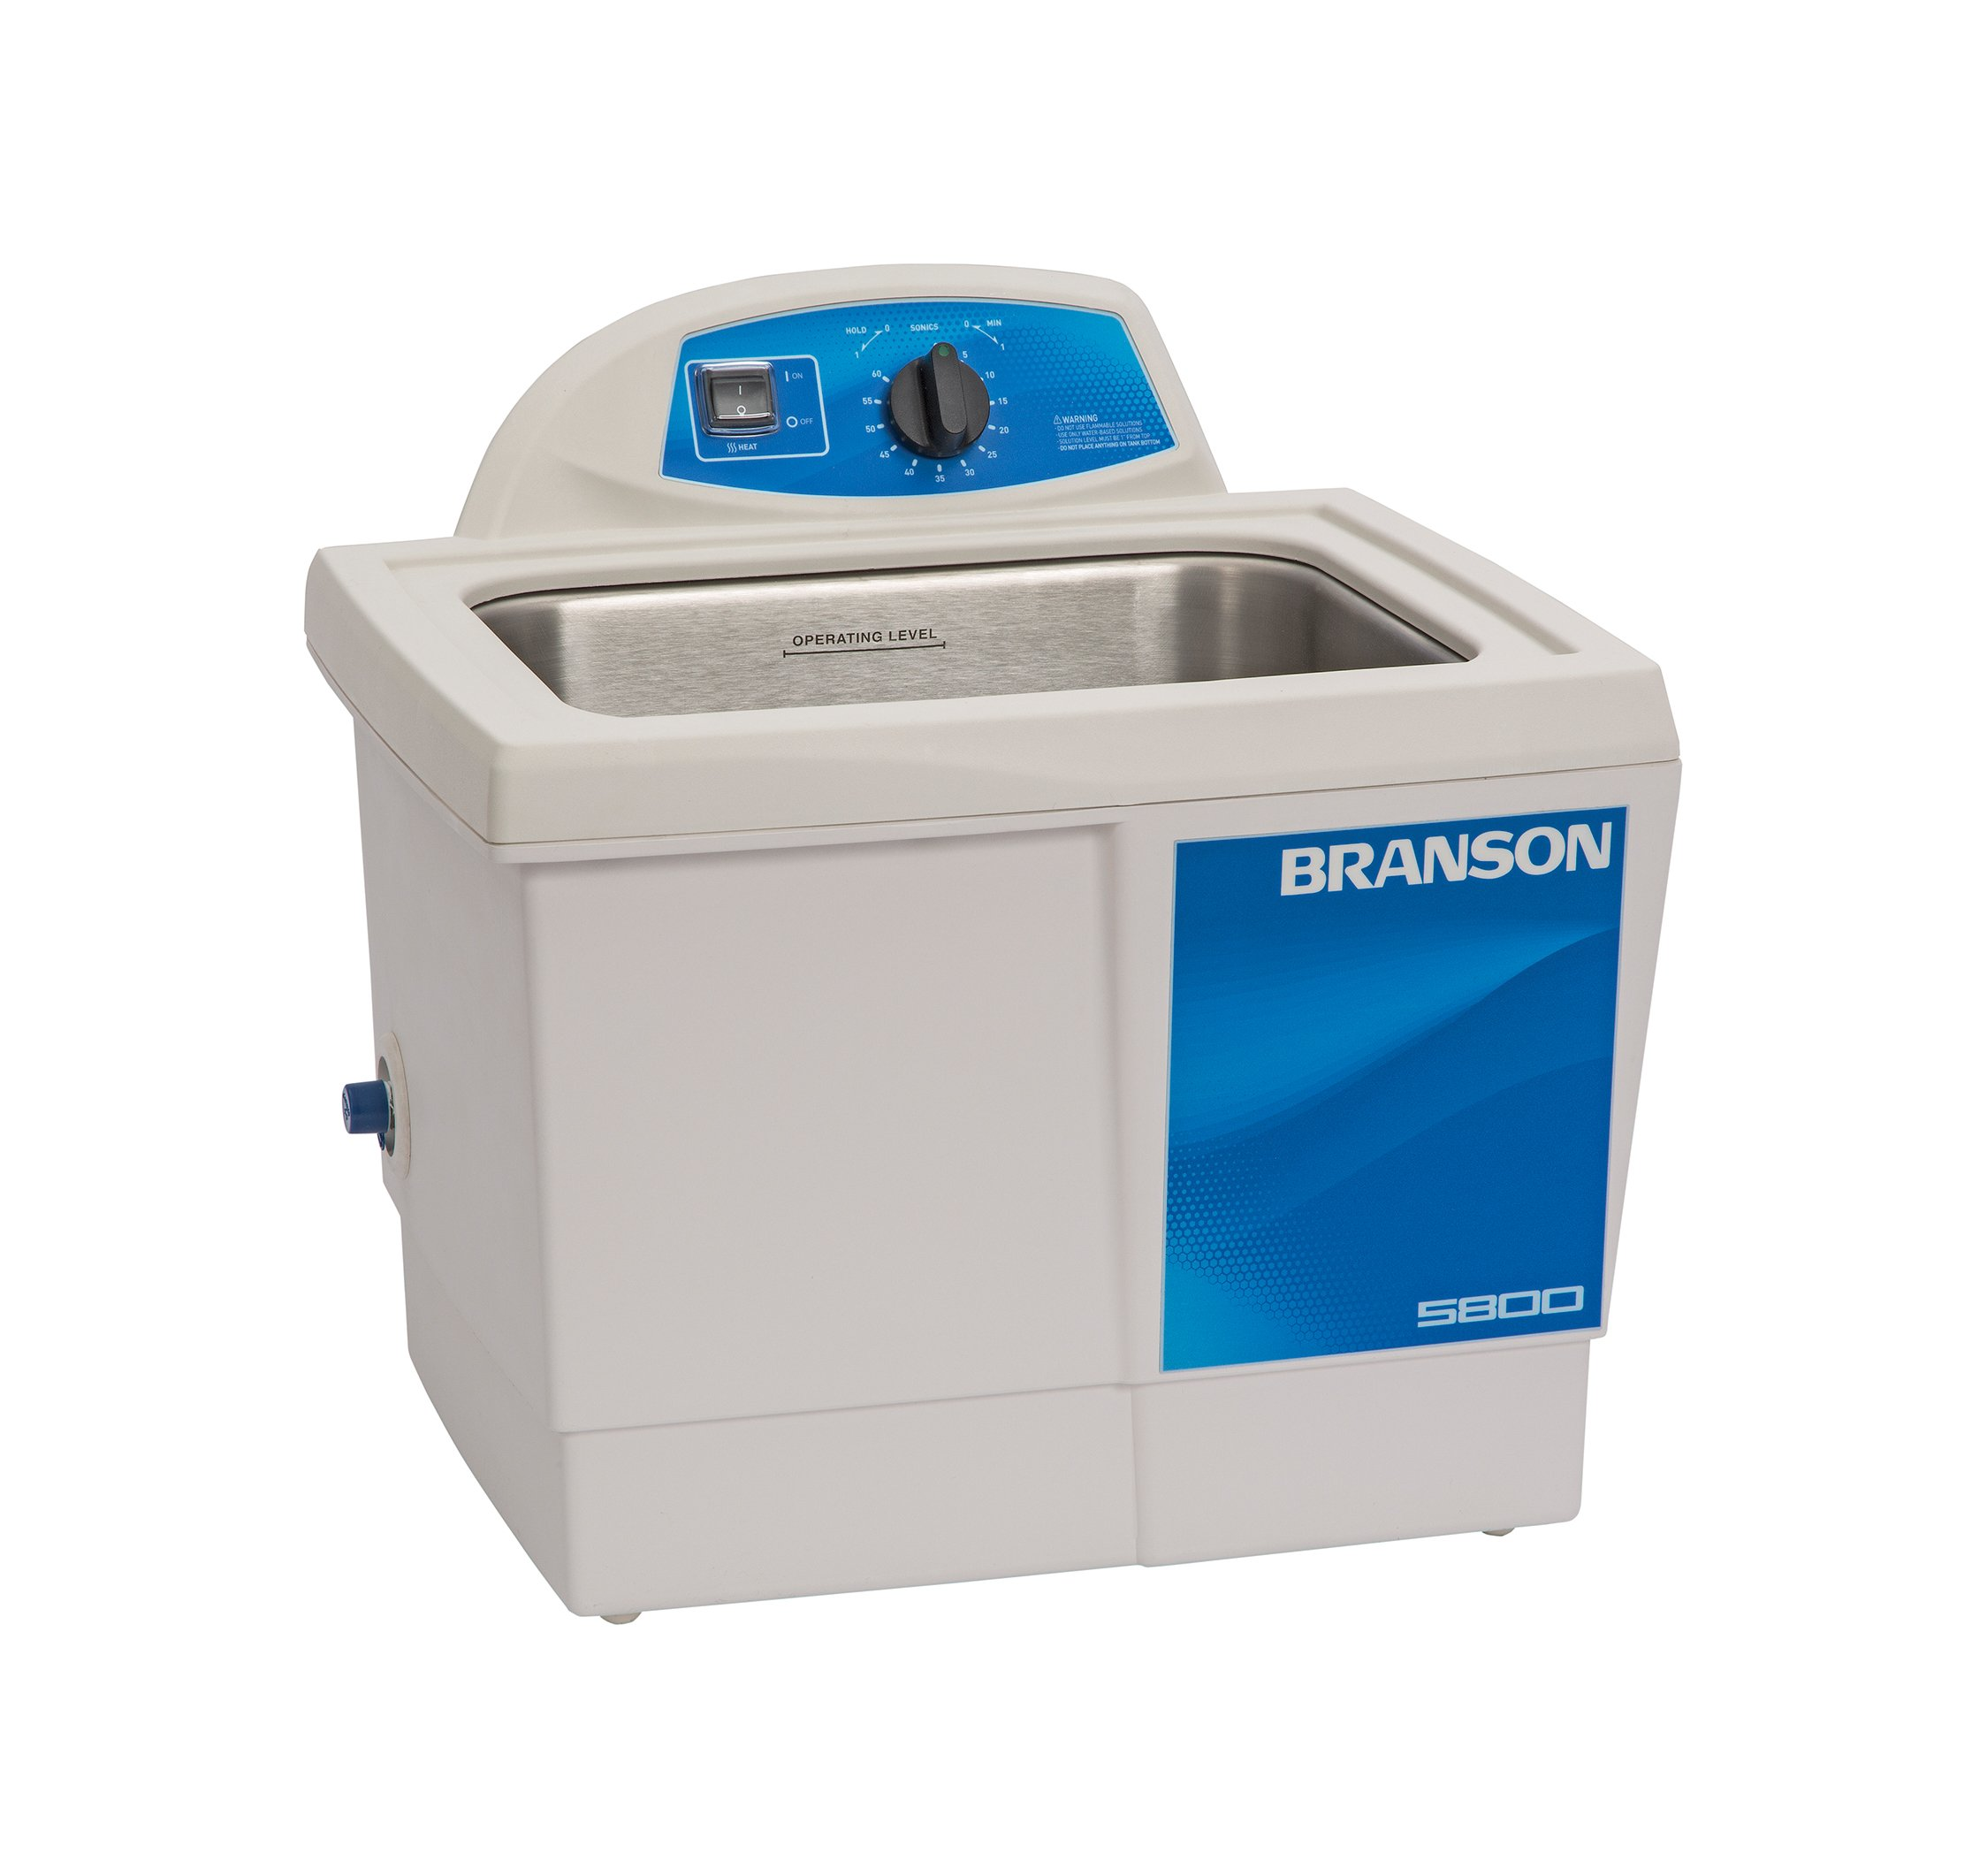 Branson CPX-952-517R Series MH Mechanical Cleaning Bath with Mechanical Timer and Heater, 2.5 Gallons Capacity, 120V